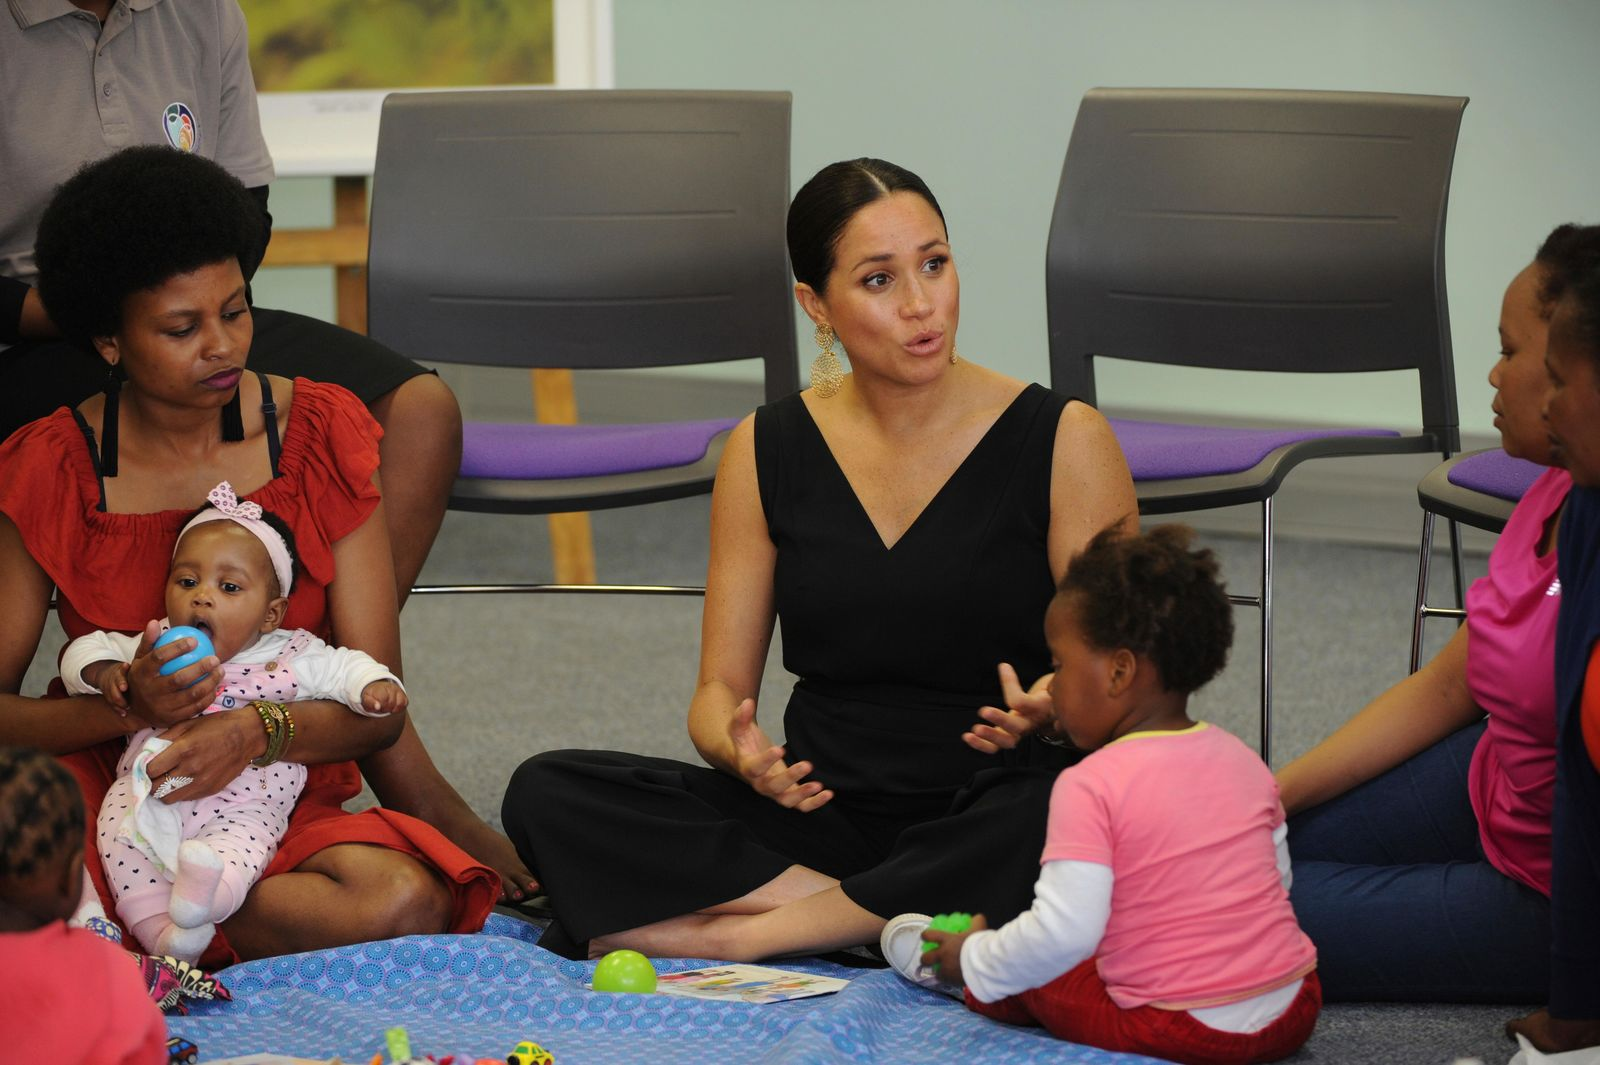 FILE - In this Wednesday, Sept. 25, 2019 file photo, Britain's Meghan, Duchess of Sussex, centre, talks with mothers during her visit to the Mothers2Mothers organisation, which trains and employs women living with HIV as frontline health workers across eight African nations, in Cape Town, South Africa. The final day of Prince Harry and his wife Meghan's 10-day visit to Africa with infant son Archie in tow has been overshadowed by a lawsuit she has filed against Britain's Mail on Sunday tabloid.  (Henk Kruger/Pool via AP, File)